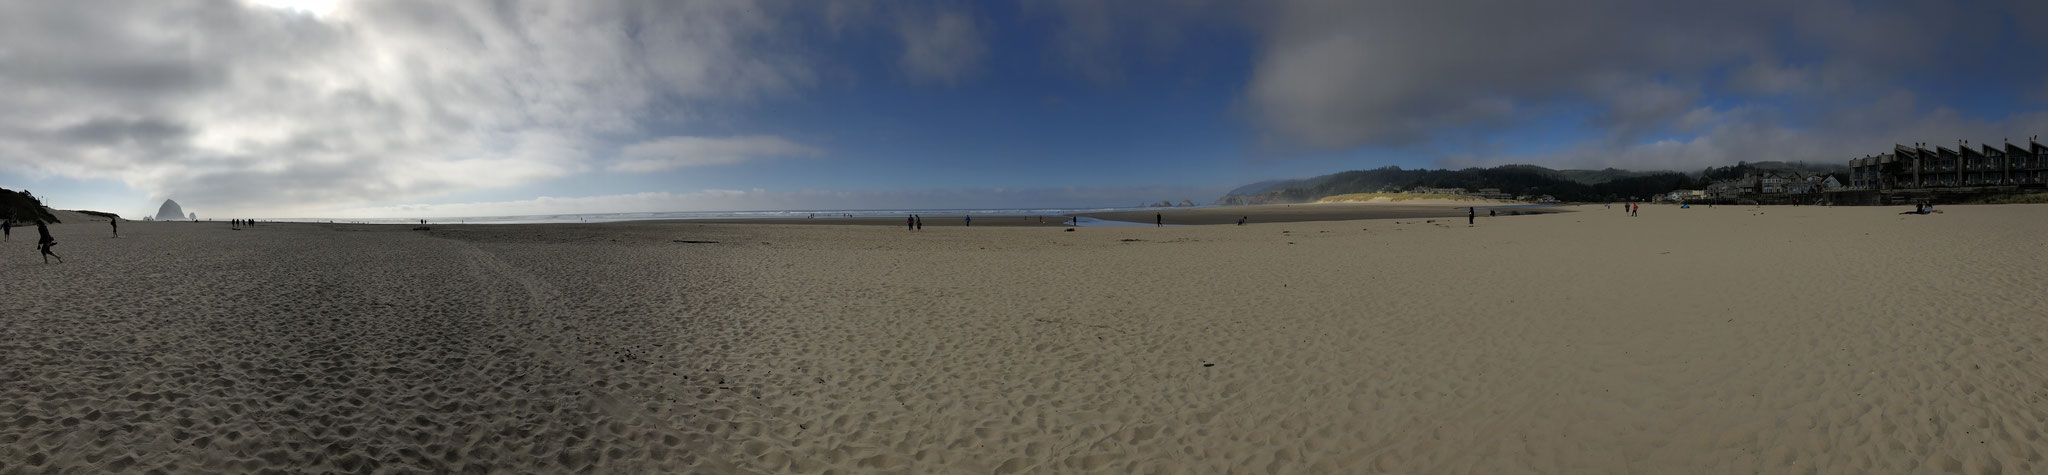 Cannon Beach a few hours later in sunshine, USA (October 2018)